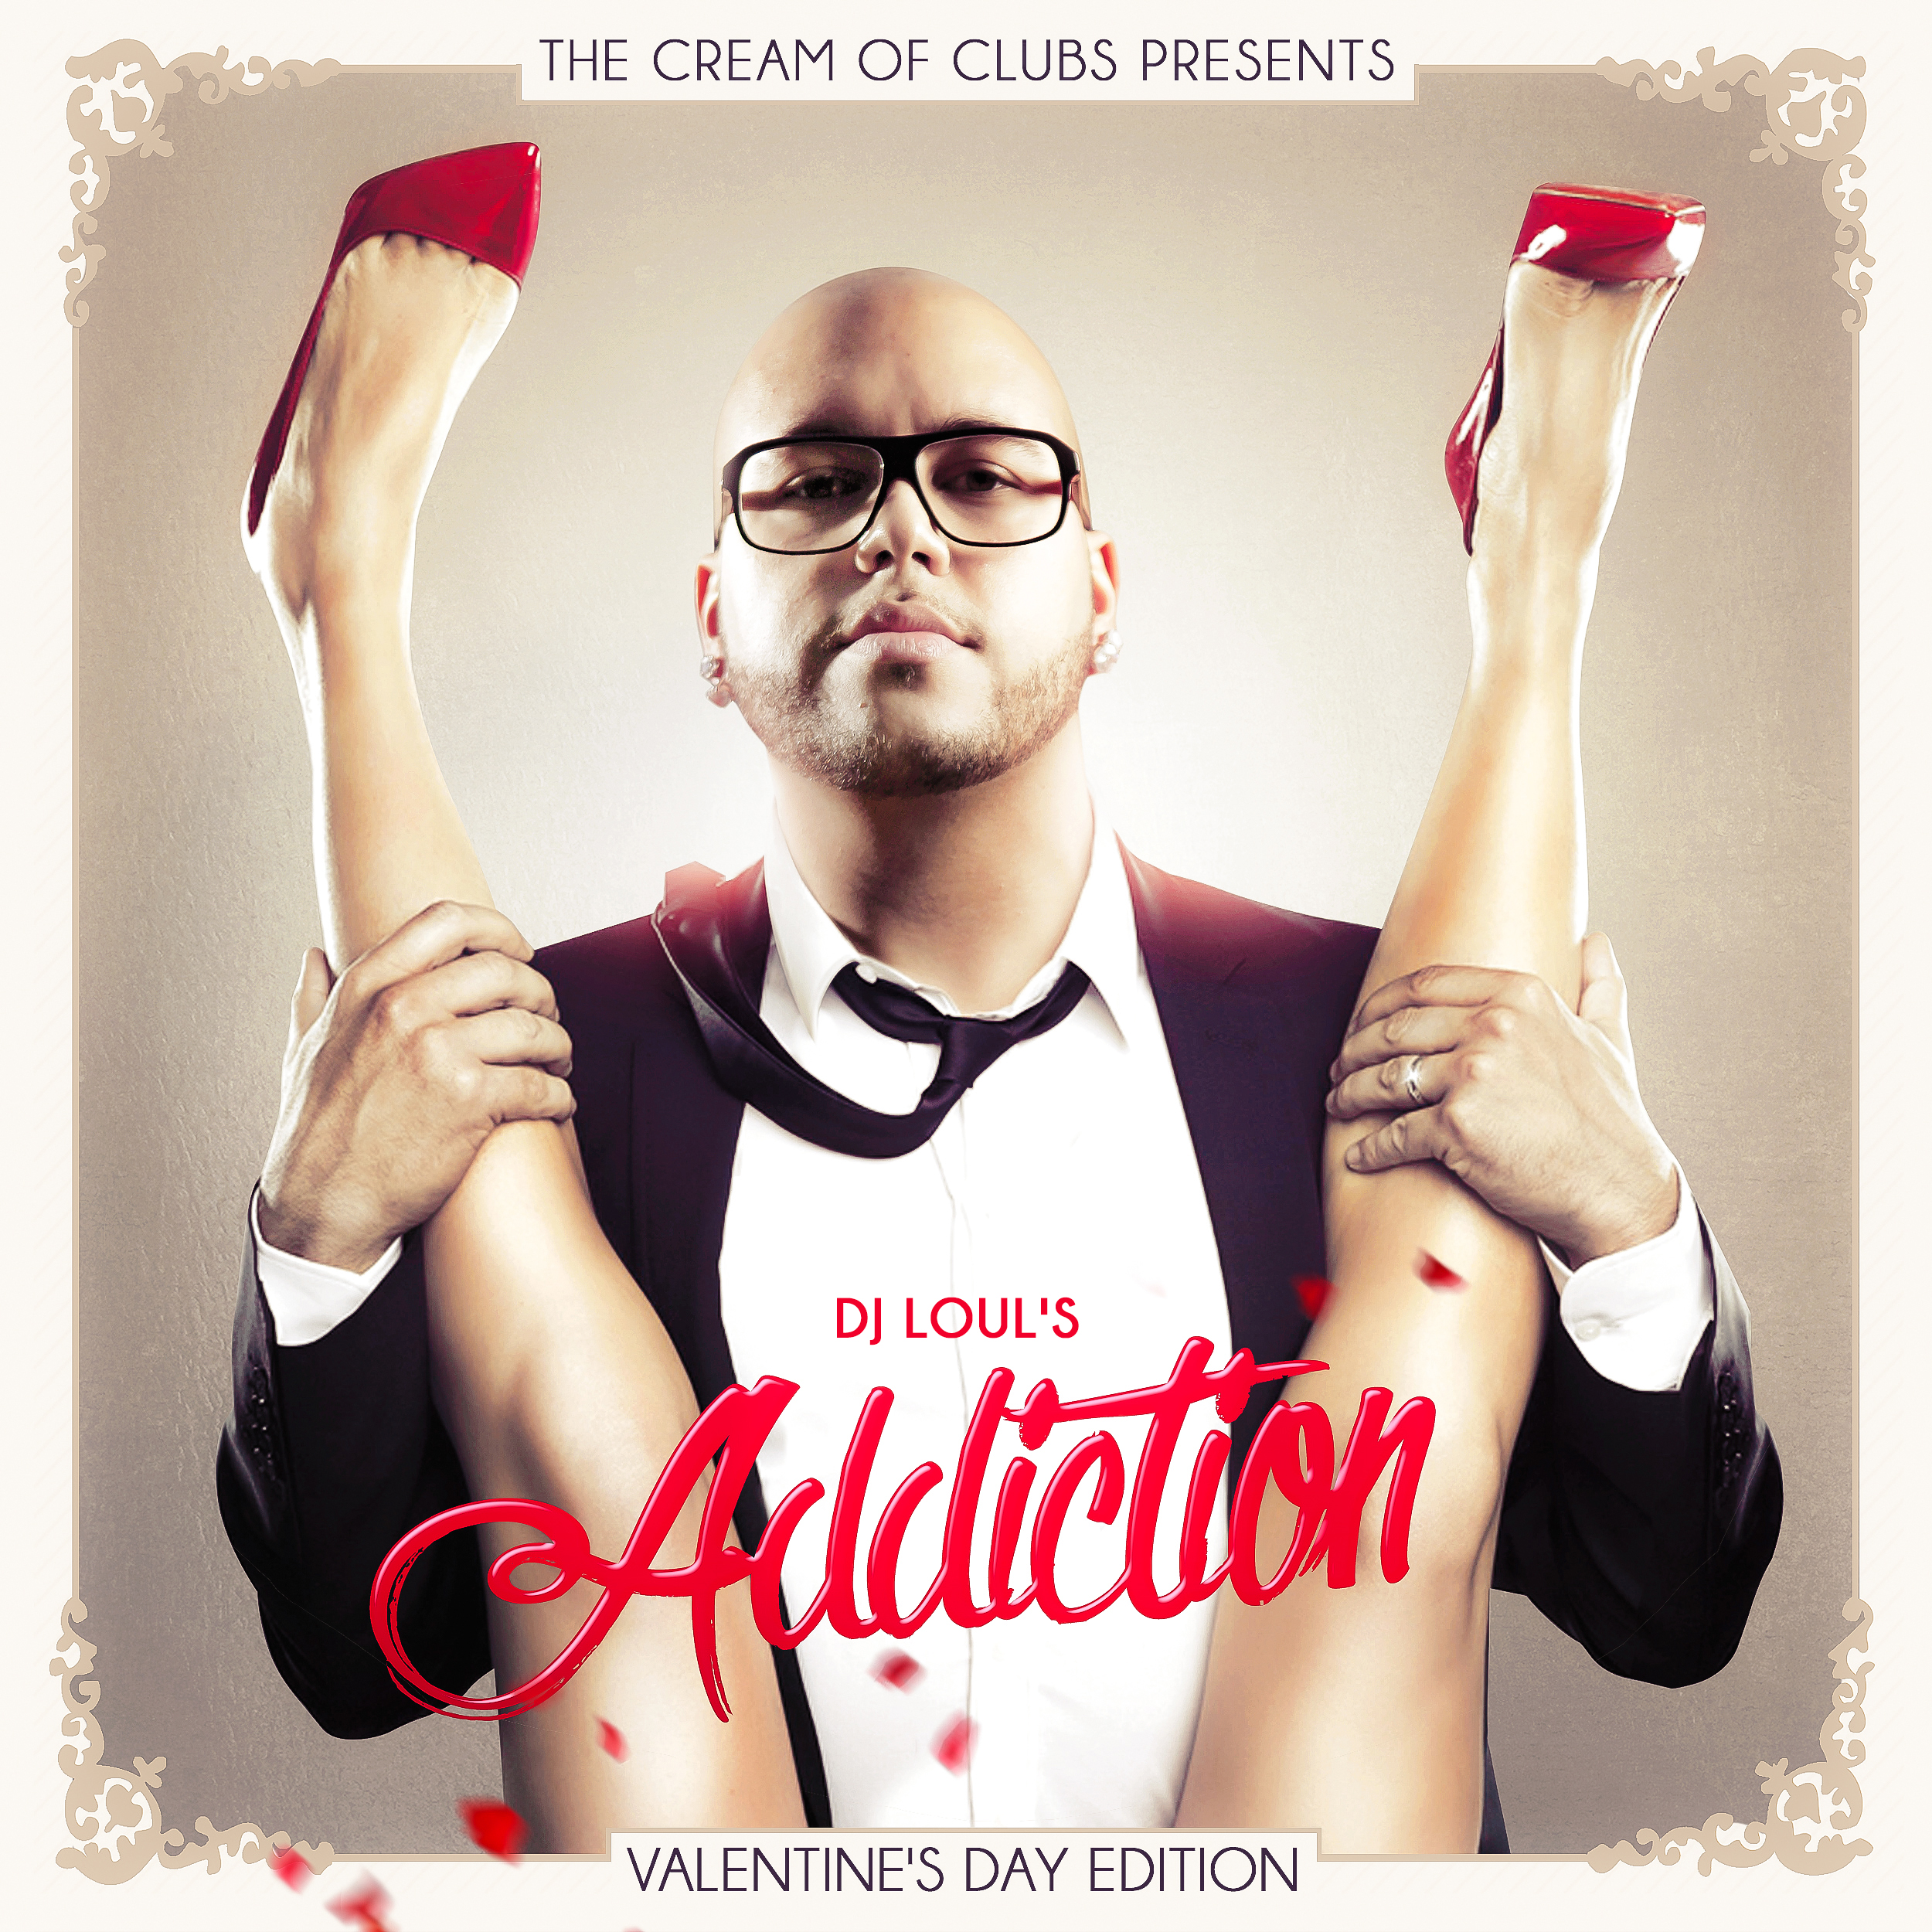 Addiction cover (Valentine's Day)